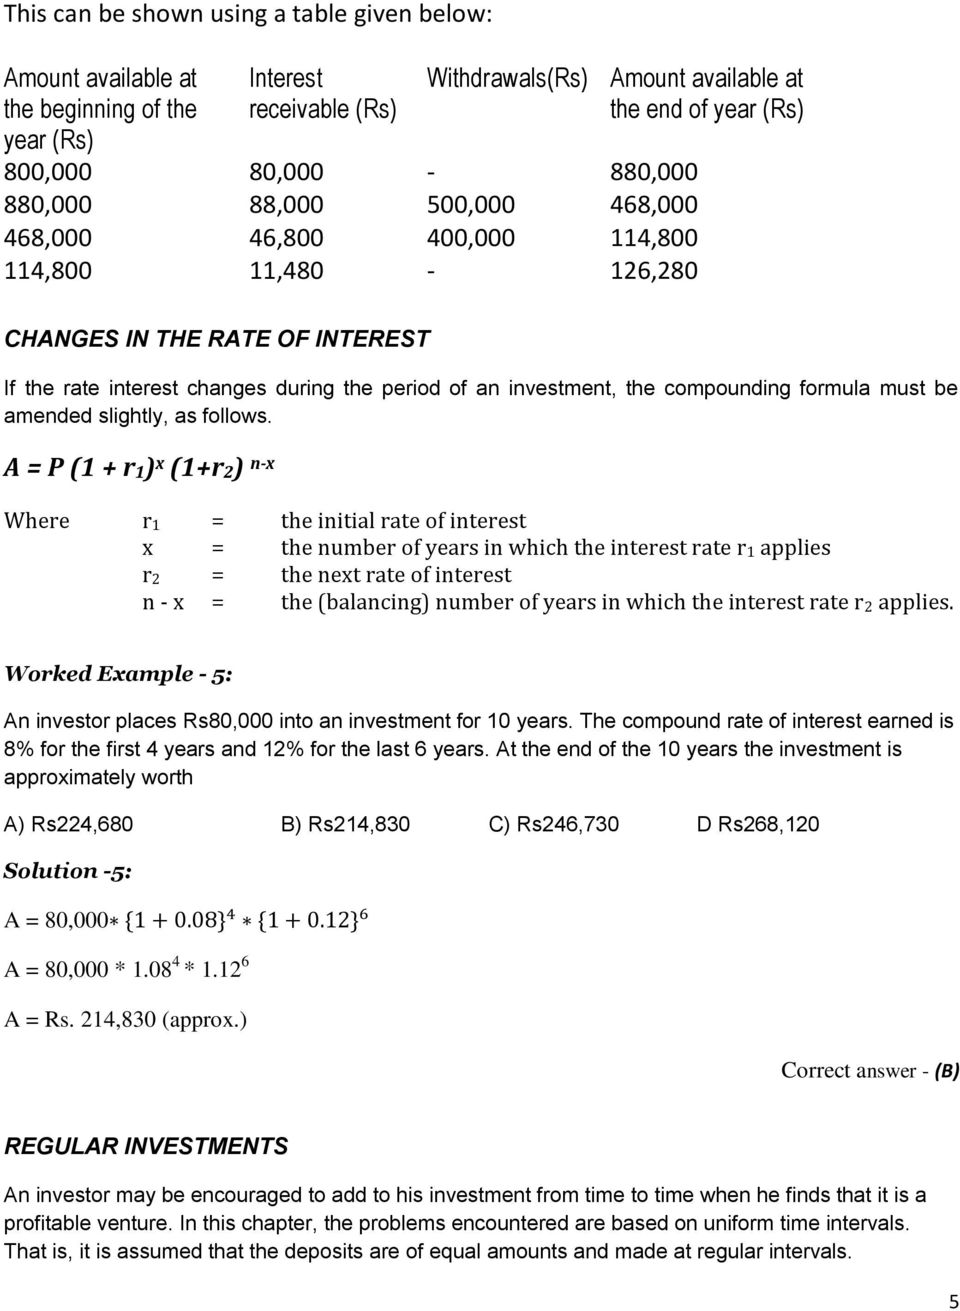 the compounding formula must be amended slightly, as follows.